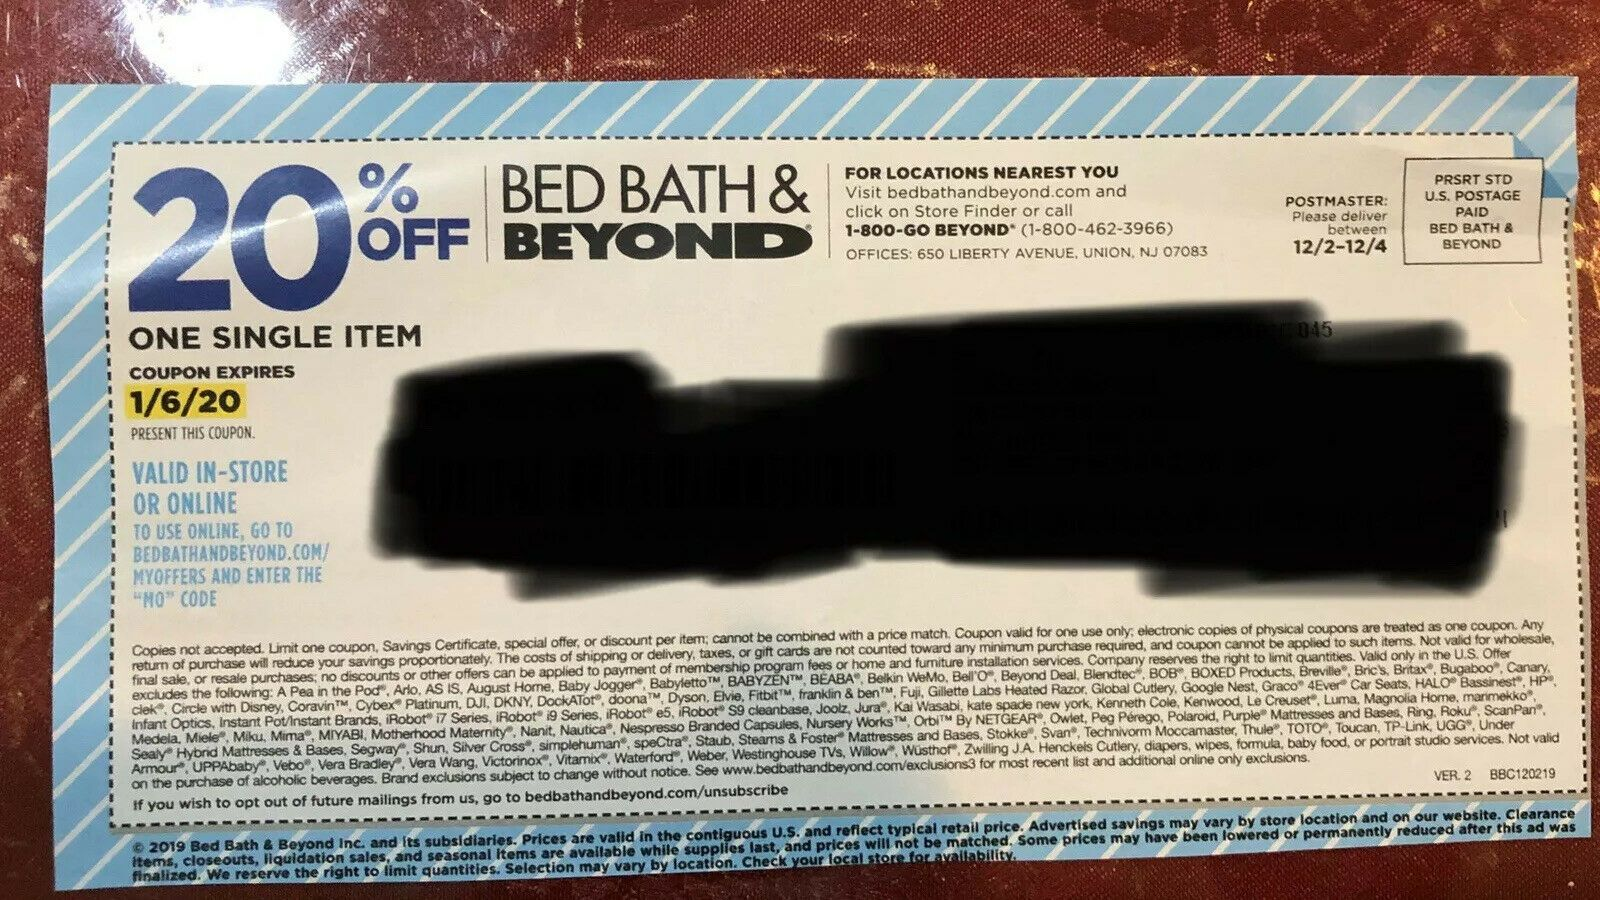 Details About Bed Bath And Beyond 20 Off Single Item Expires 1 6